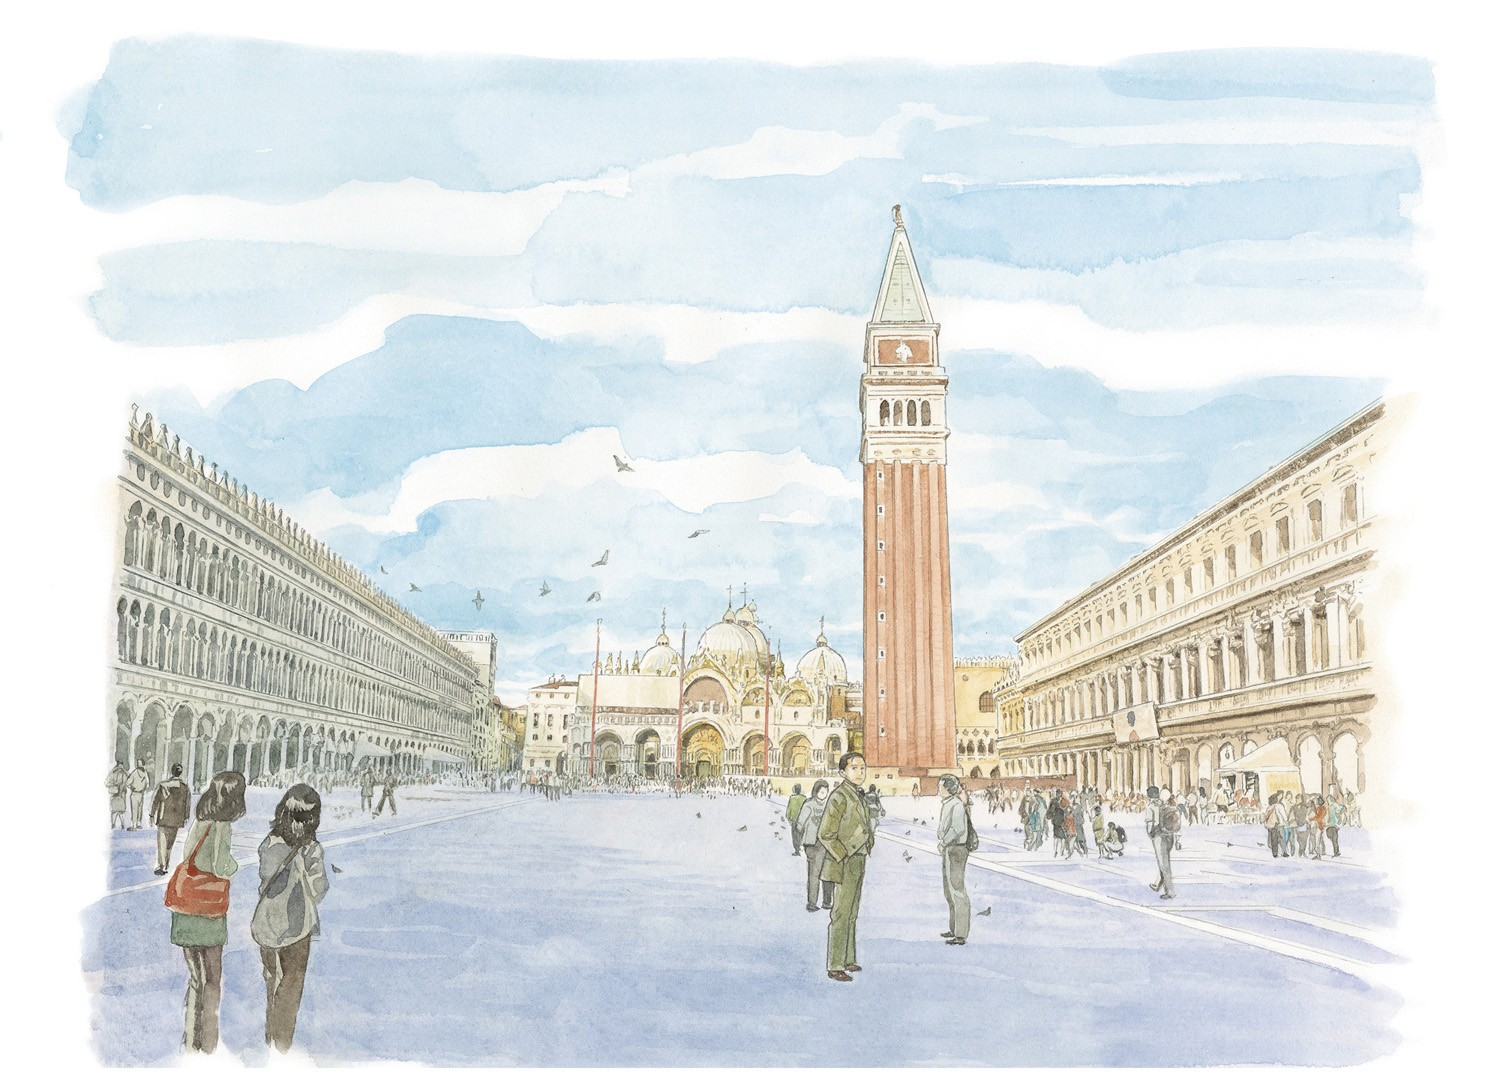 Louis Vuitton Travel Book Venice 2014, by Jiro Taniguchi